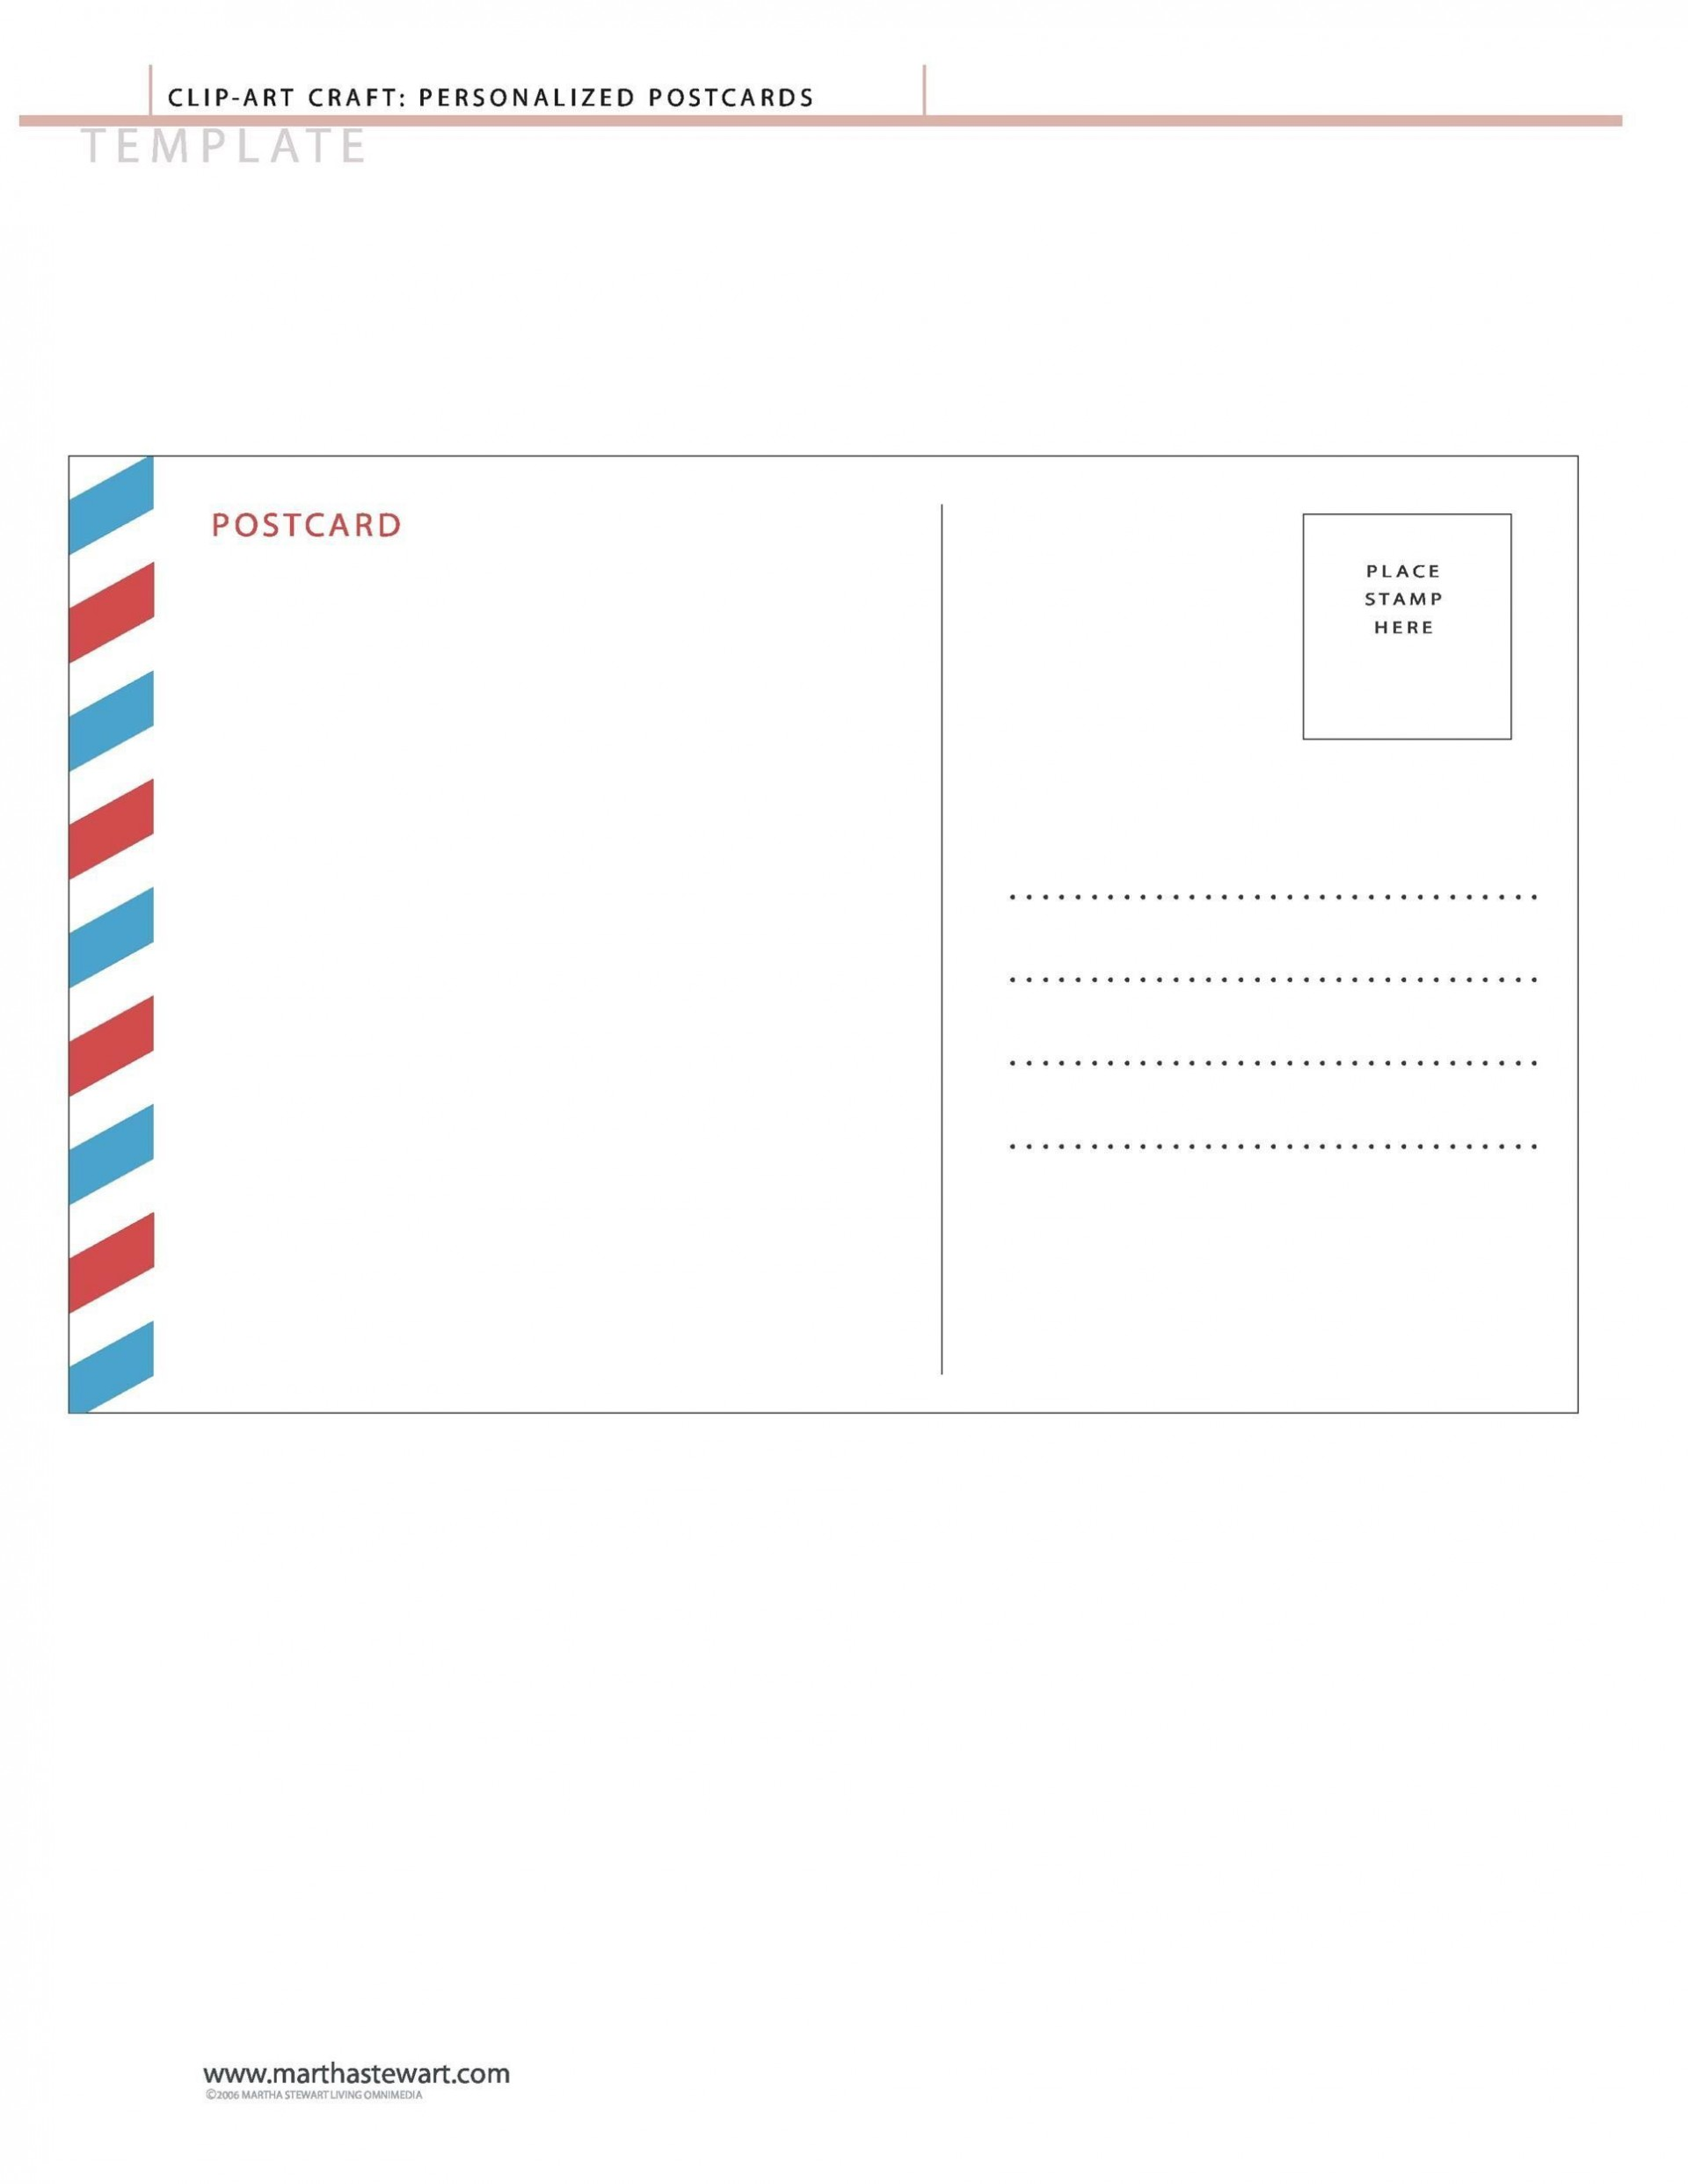 004 Marvelou Free Postcard Template Download Microsoft Word Concept 1920